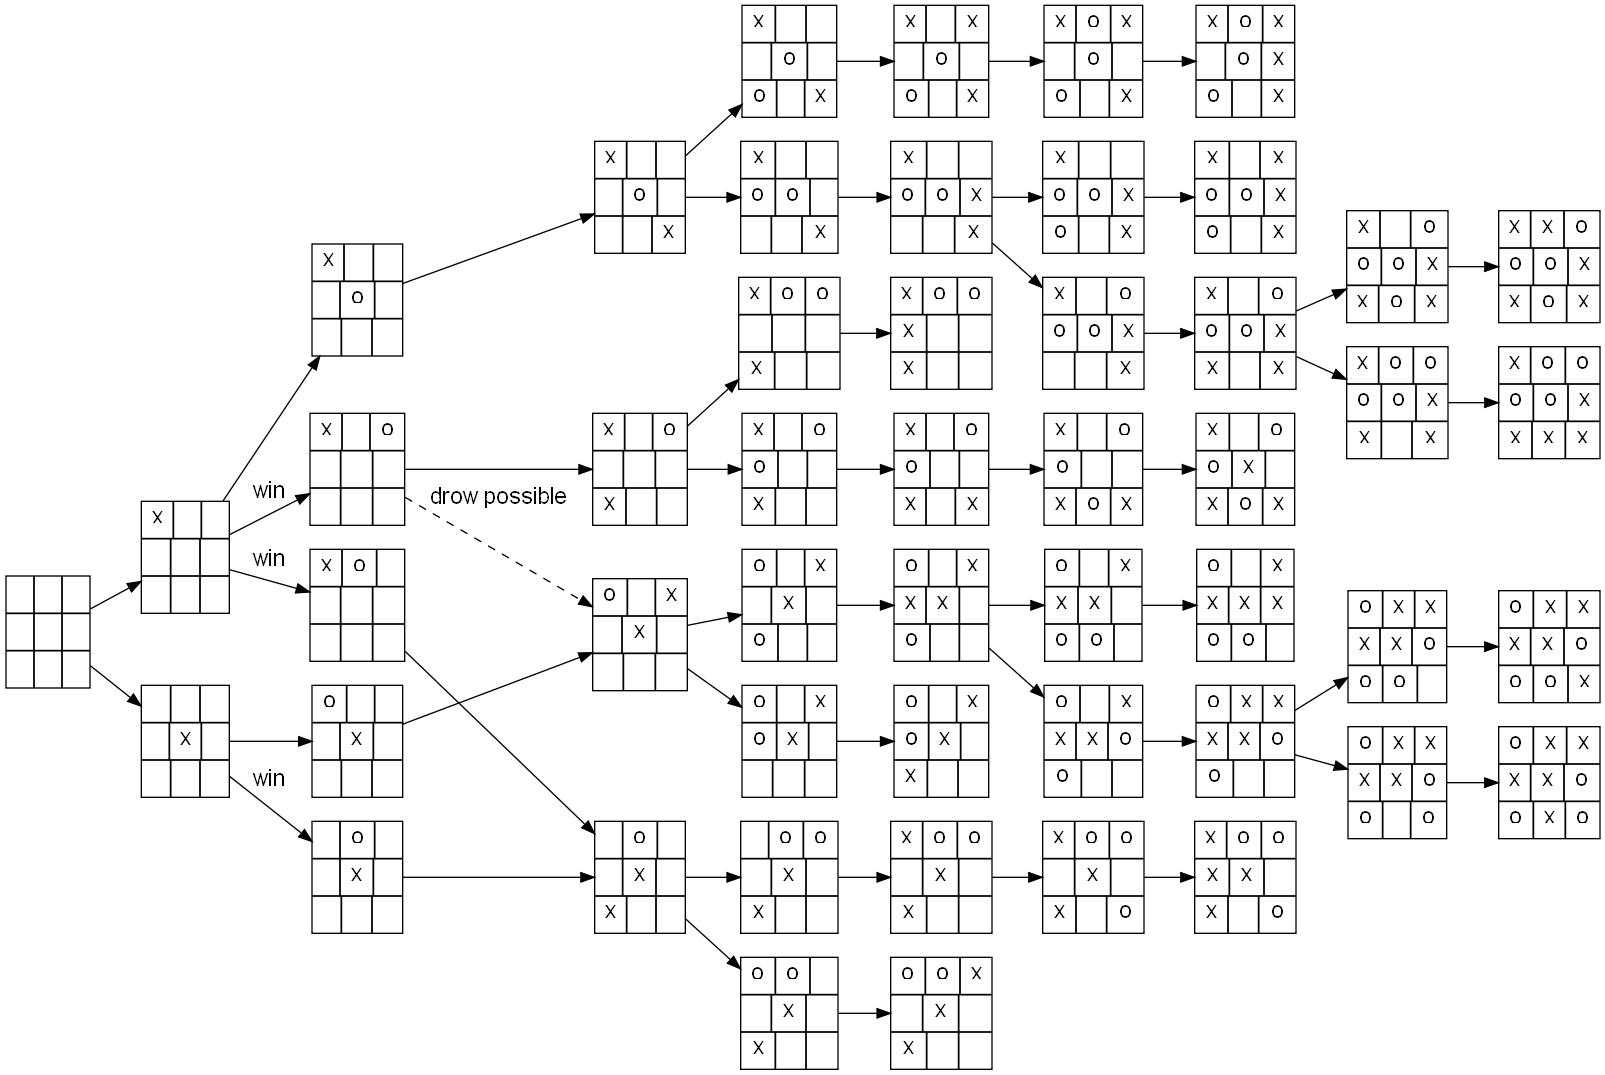 Tic-tac-toe-full-game-tree-x-rational.jp